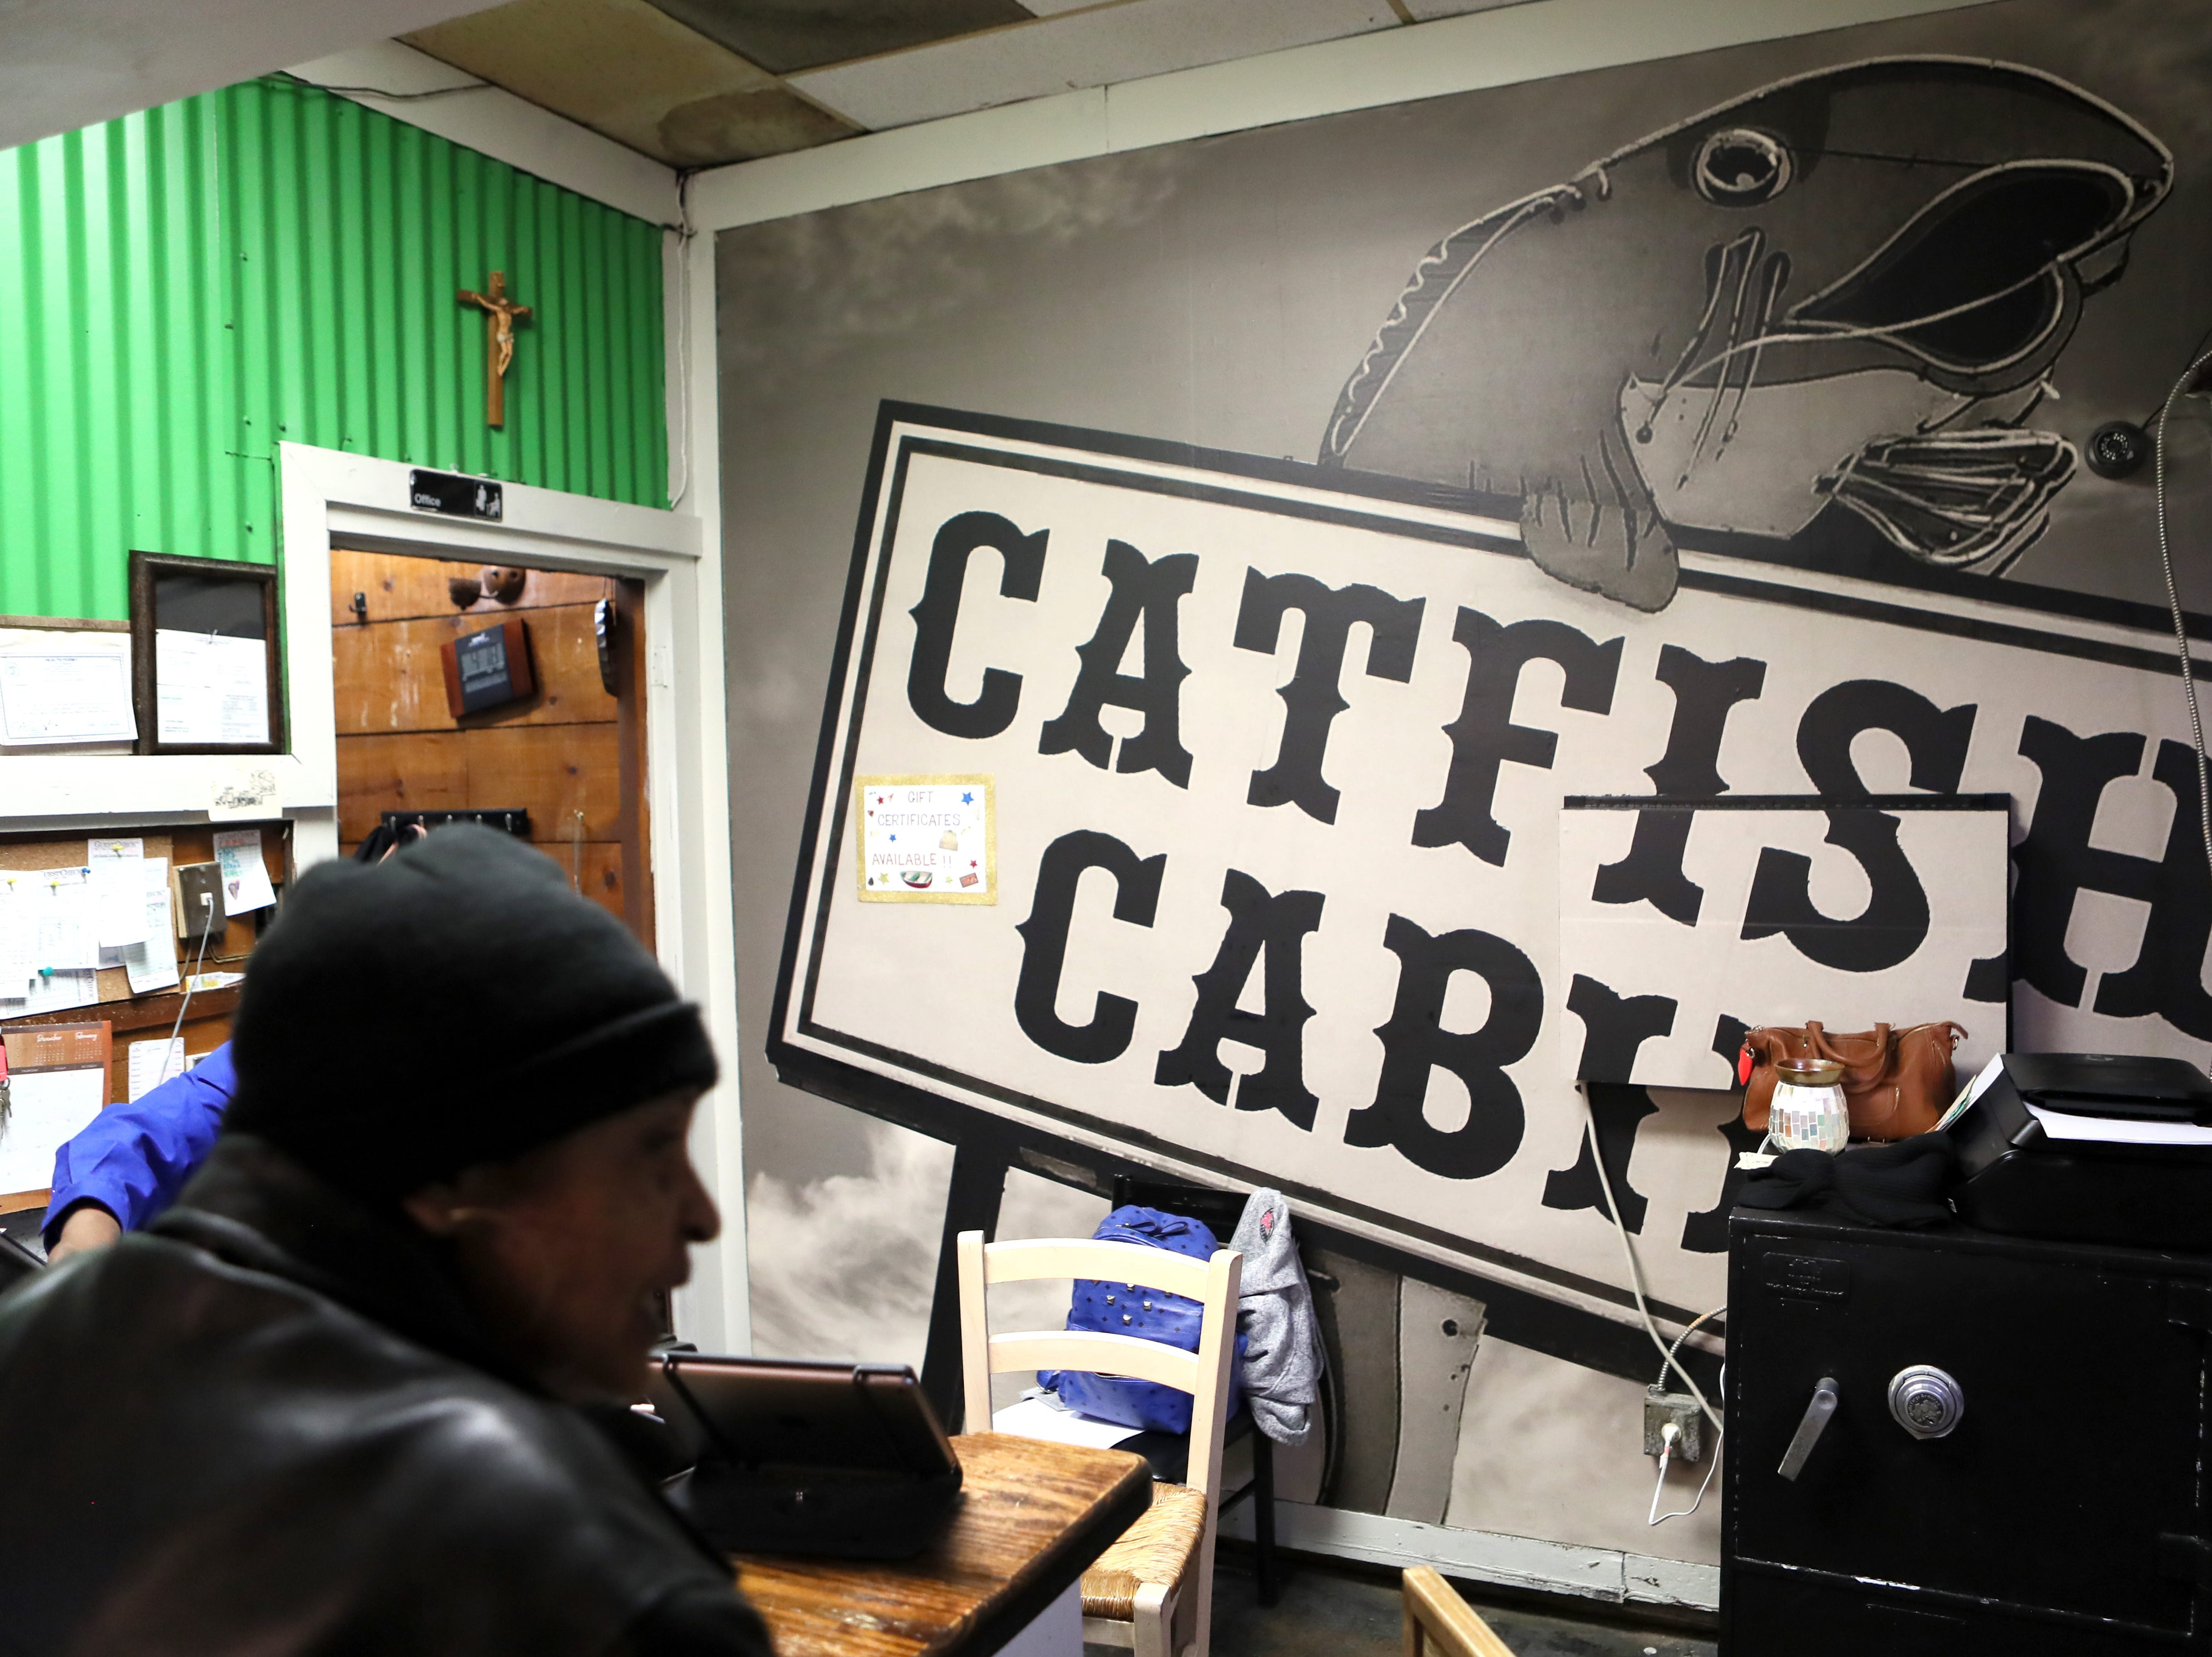 Catfish Cabin, which recently appeared on an episode of Gordon Ramsay's 24 Hours to Hell and Back television show.